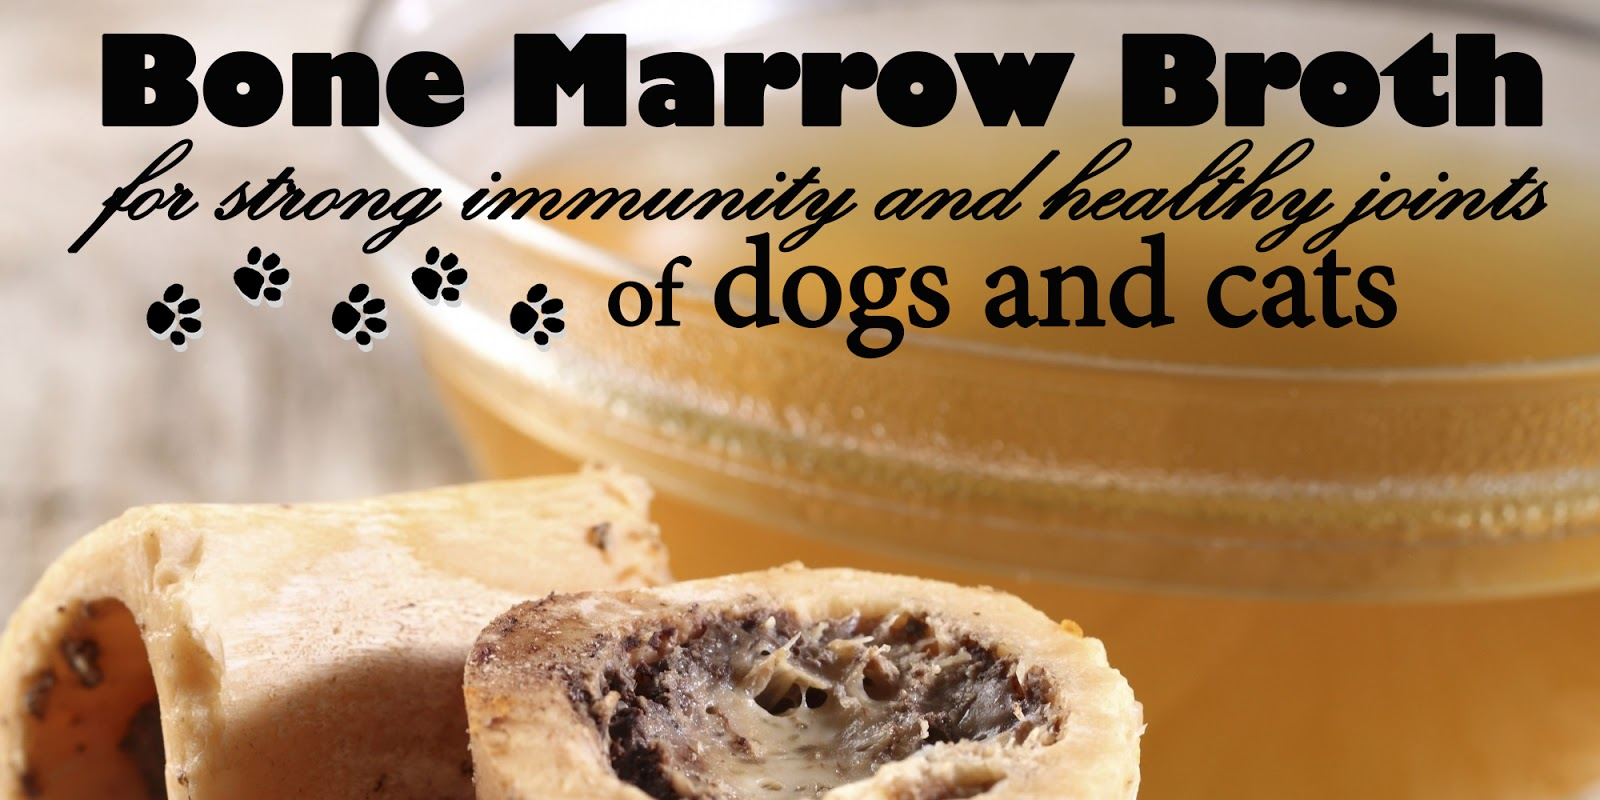 Katerinas journal bone marrow broth for your dog and cats great bone marrow broth for your dog and cats great health forumfinder Images